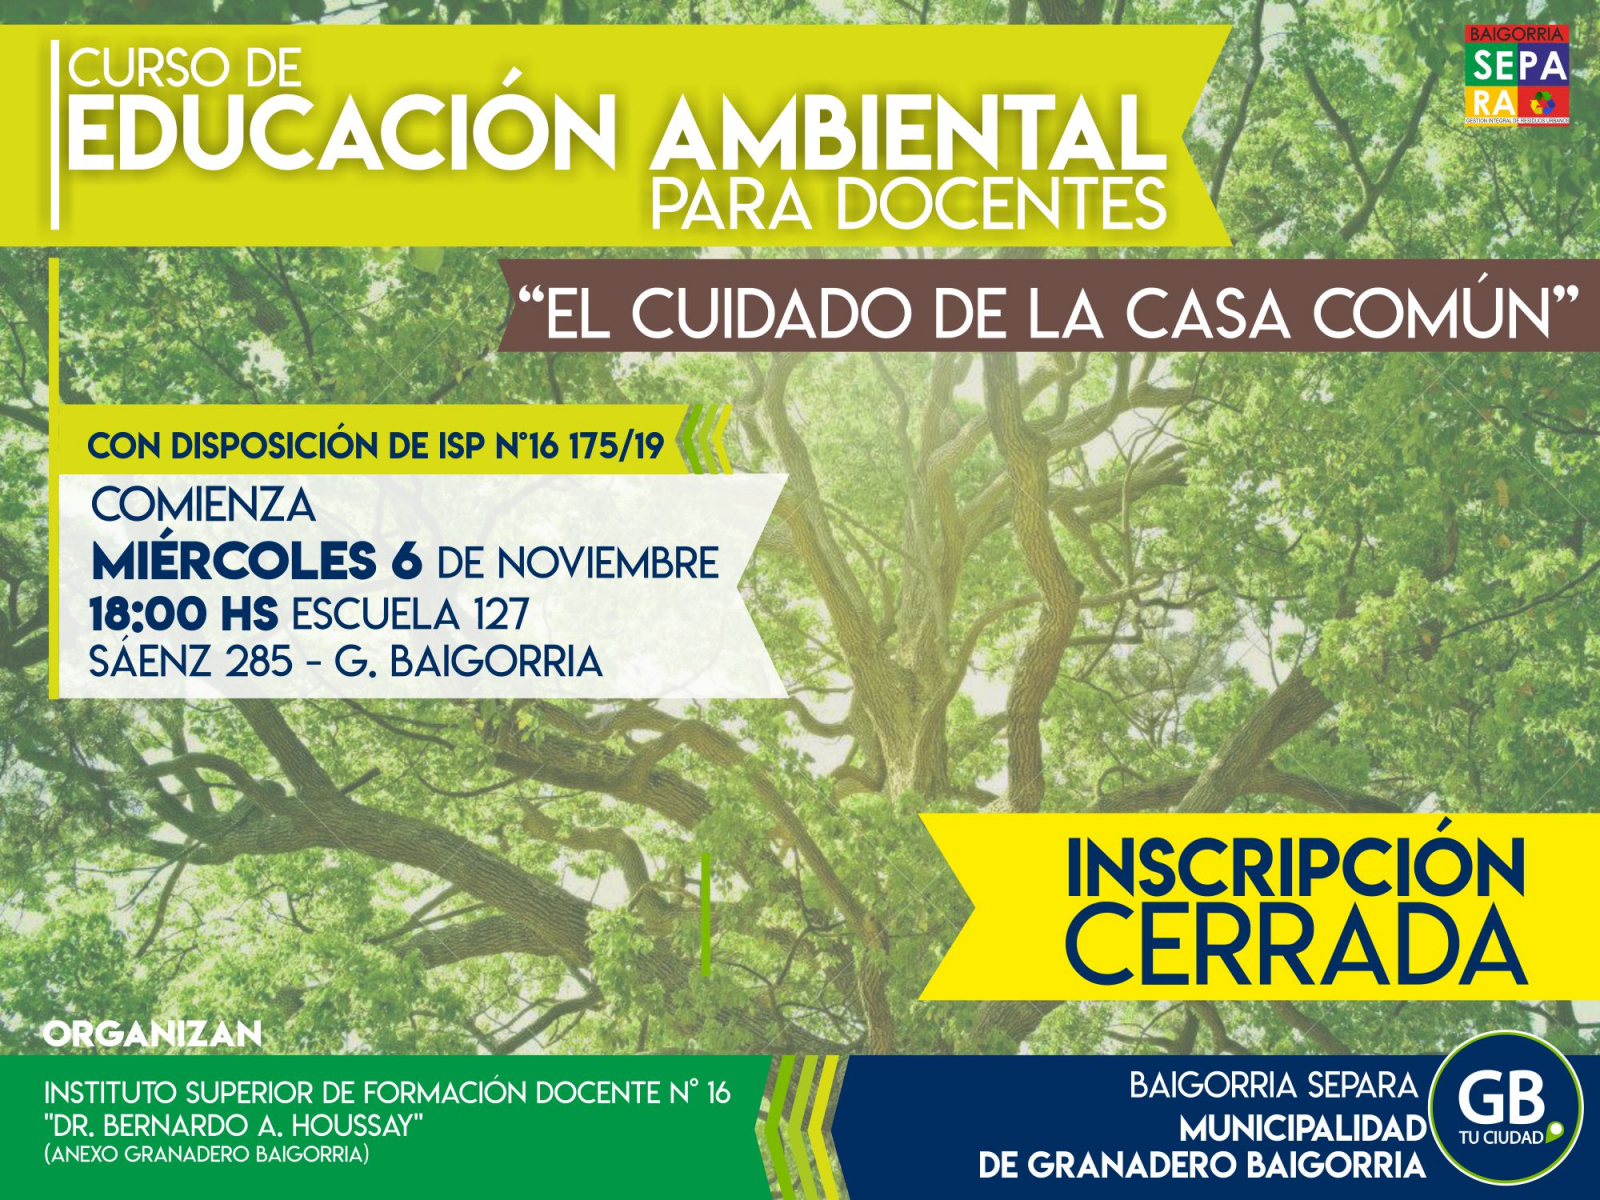 <a href='#link' style='color: white; font-size: 10px;'>#EducacionAmbiental</a>